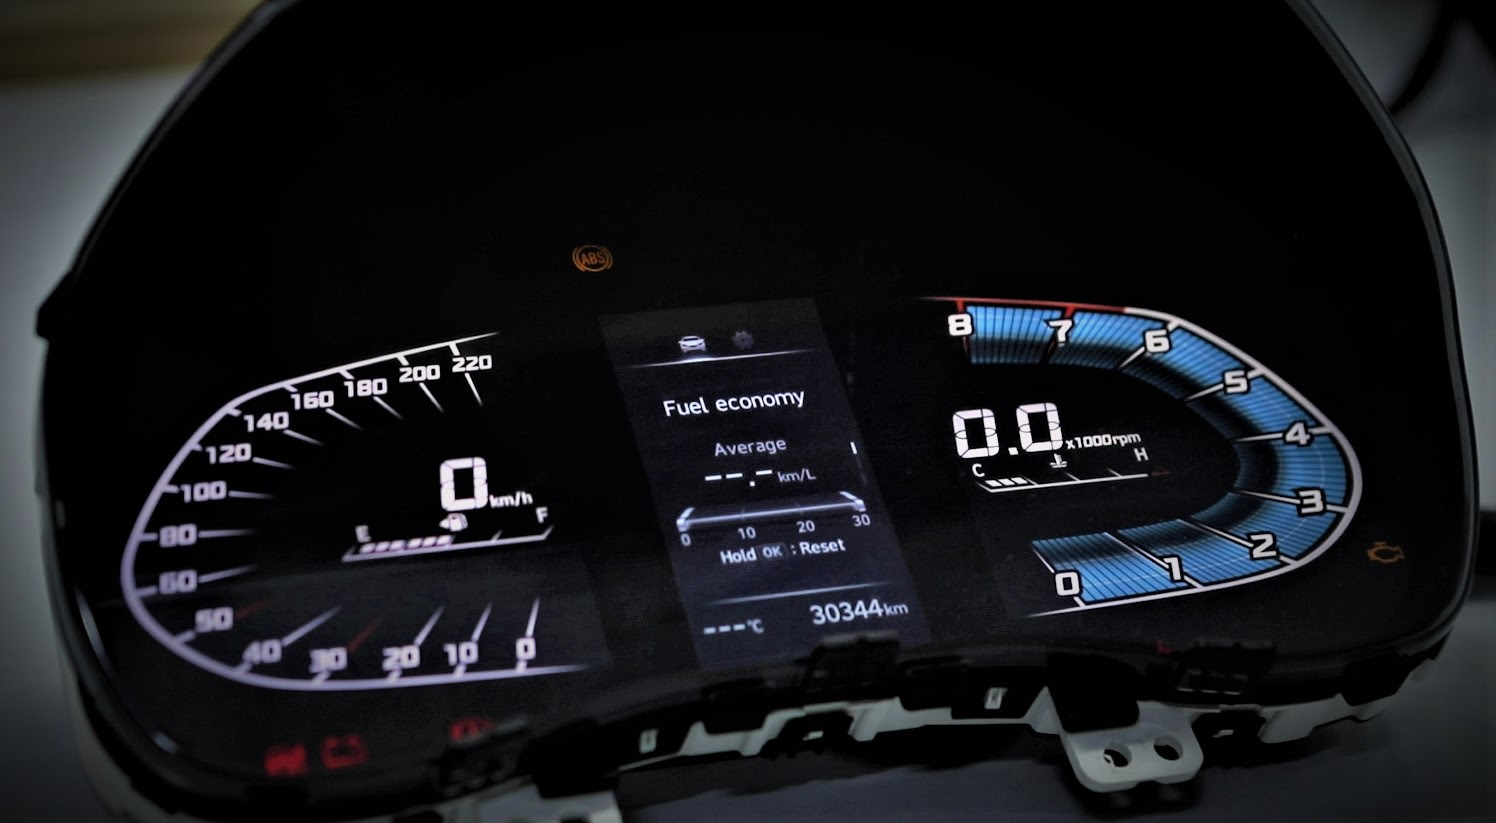 Growing demand for automotive HMI Technologies in India - Continental wins new Business with Hyundai